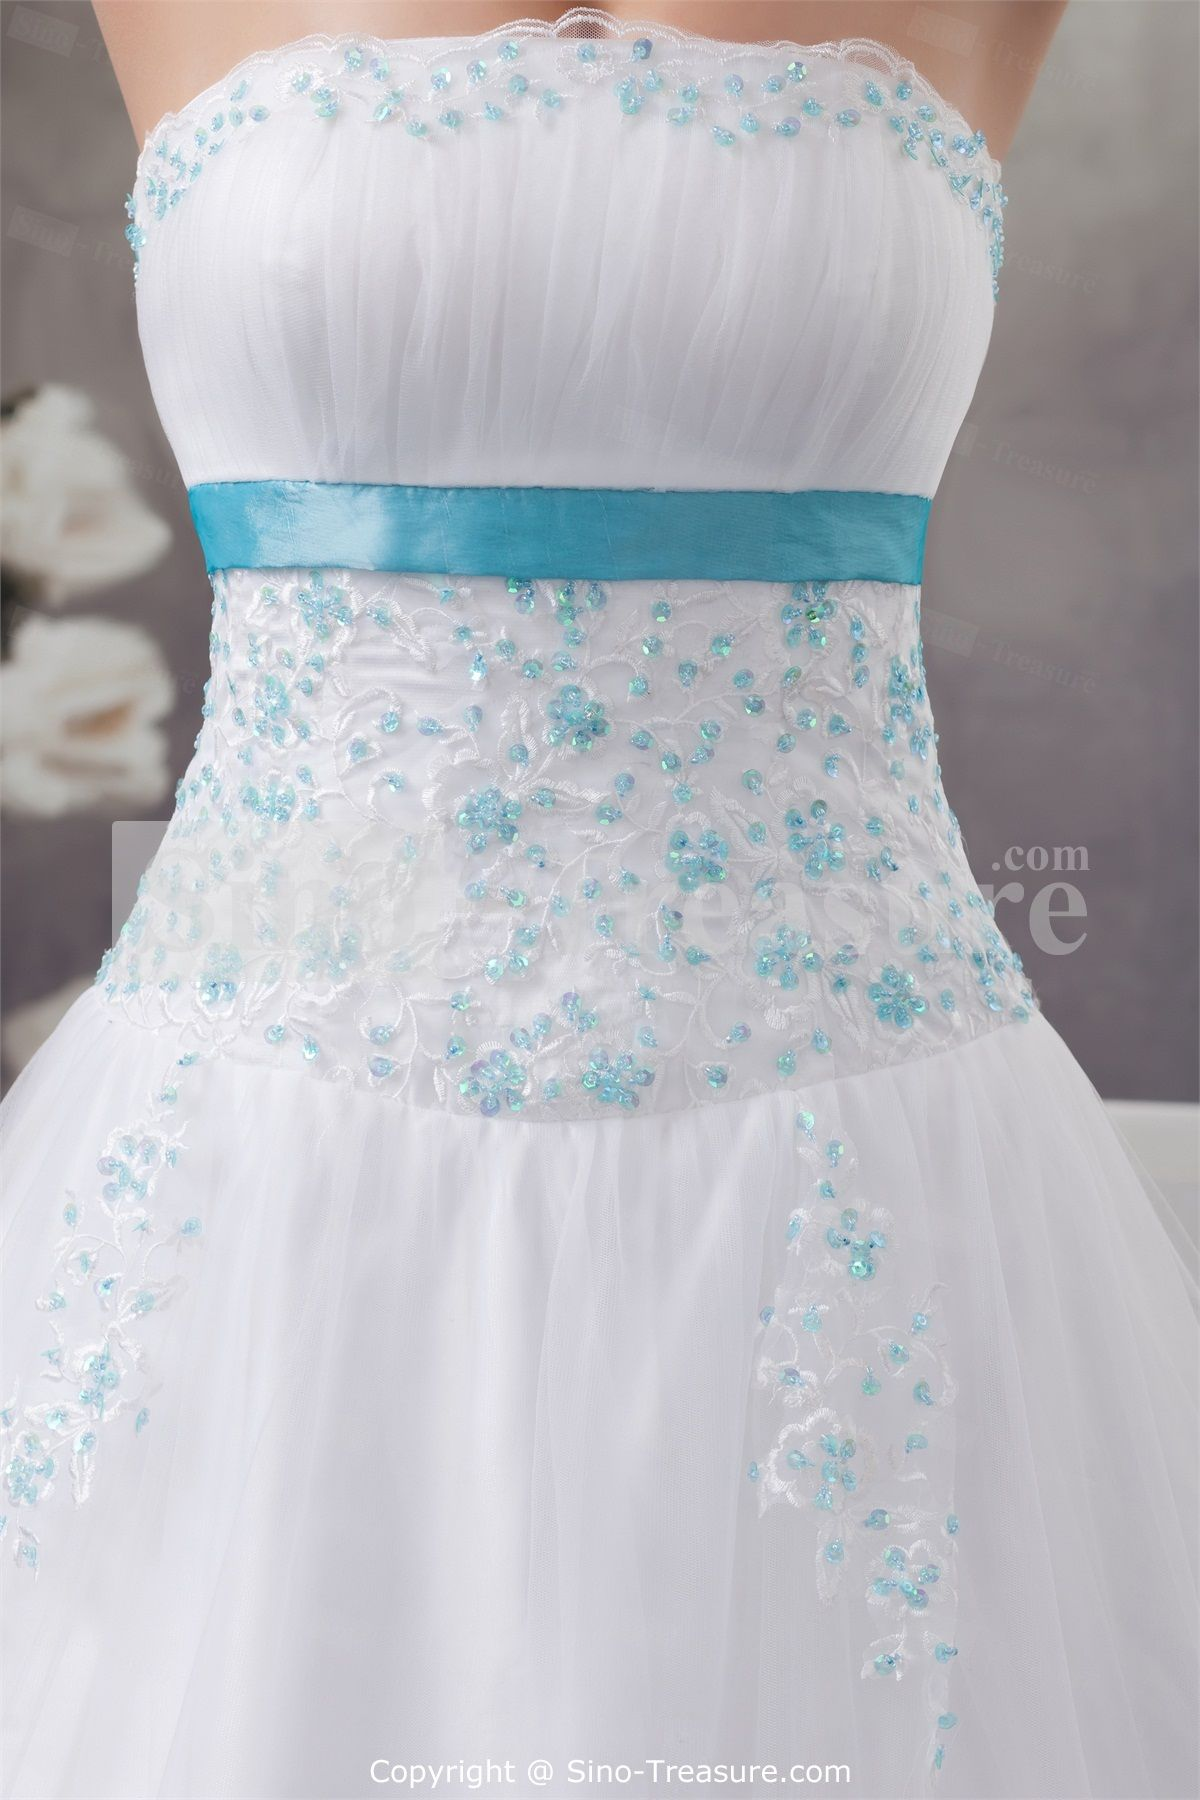 bling wedding gown | Wedding Dresses Ball Gown With Bling ...